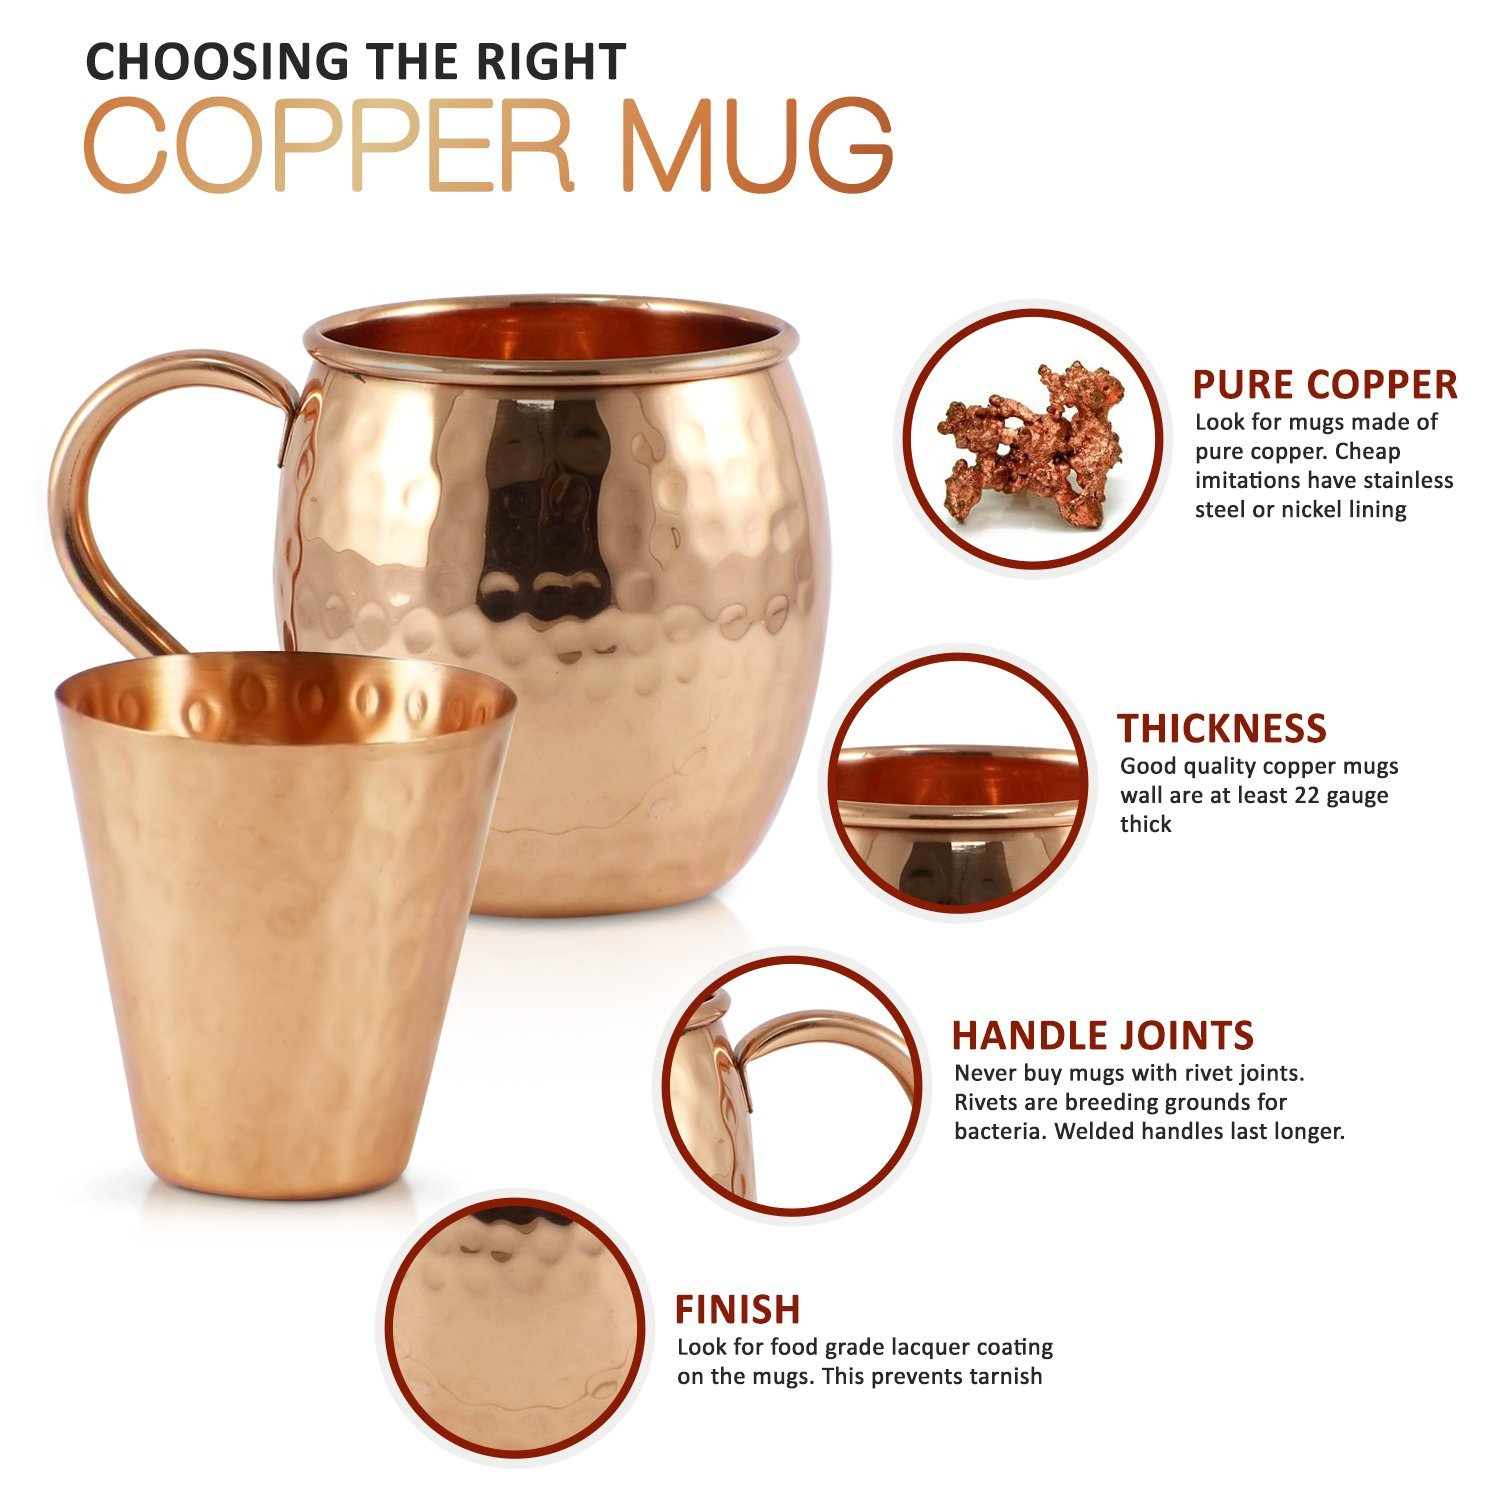 Mule Science Moscow Mule Copper Mugs - Set of 4 - 100% HANDCRAFTED - Pure Solid Copper Mugs 16 oz Gift Set with BONUS: Highest Quality Cocktail Copper Straws, Coasters and Shot Glass! by Advanced Mixology (Image #4)